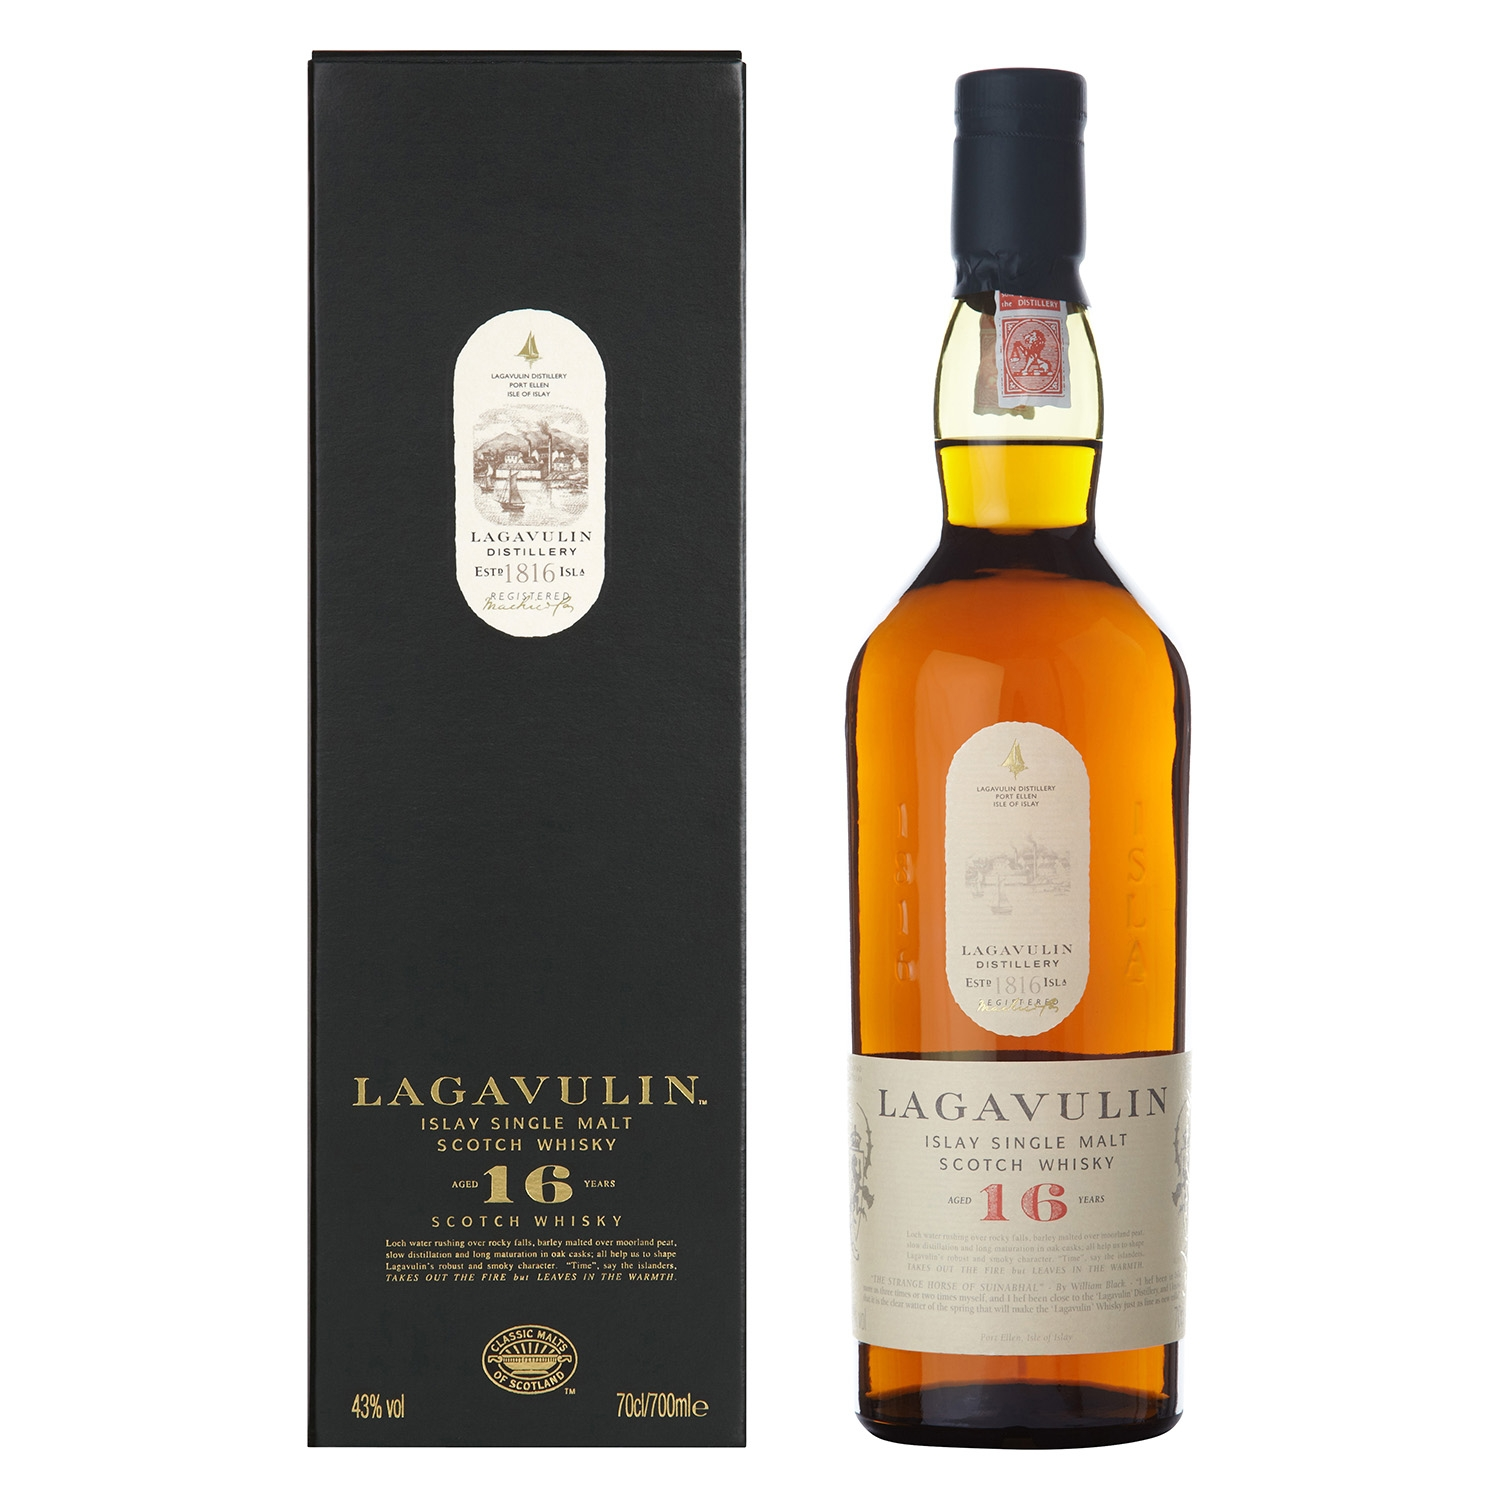 single malt scotch whisky de 16 a os lagavulin carrefour supermercado compra online. Black Bedroom Furniture Sets. Home Design Ideas